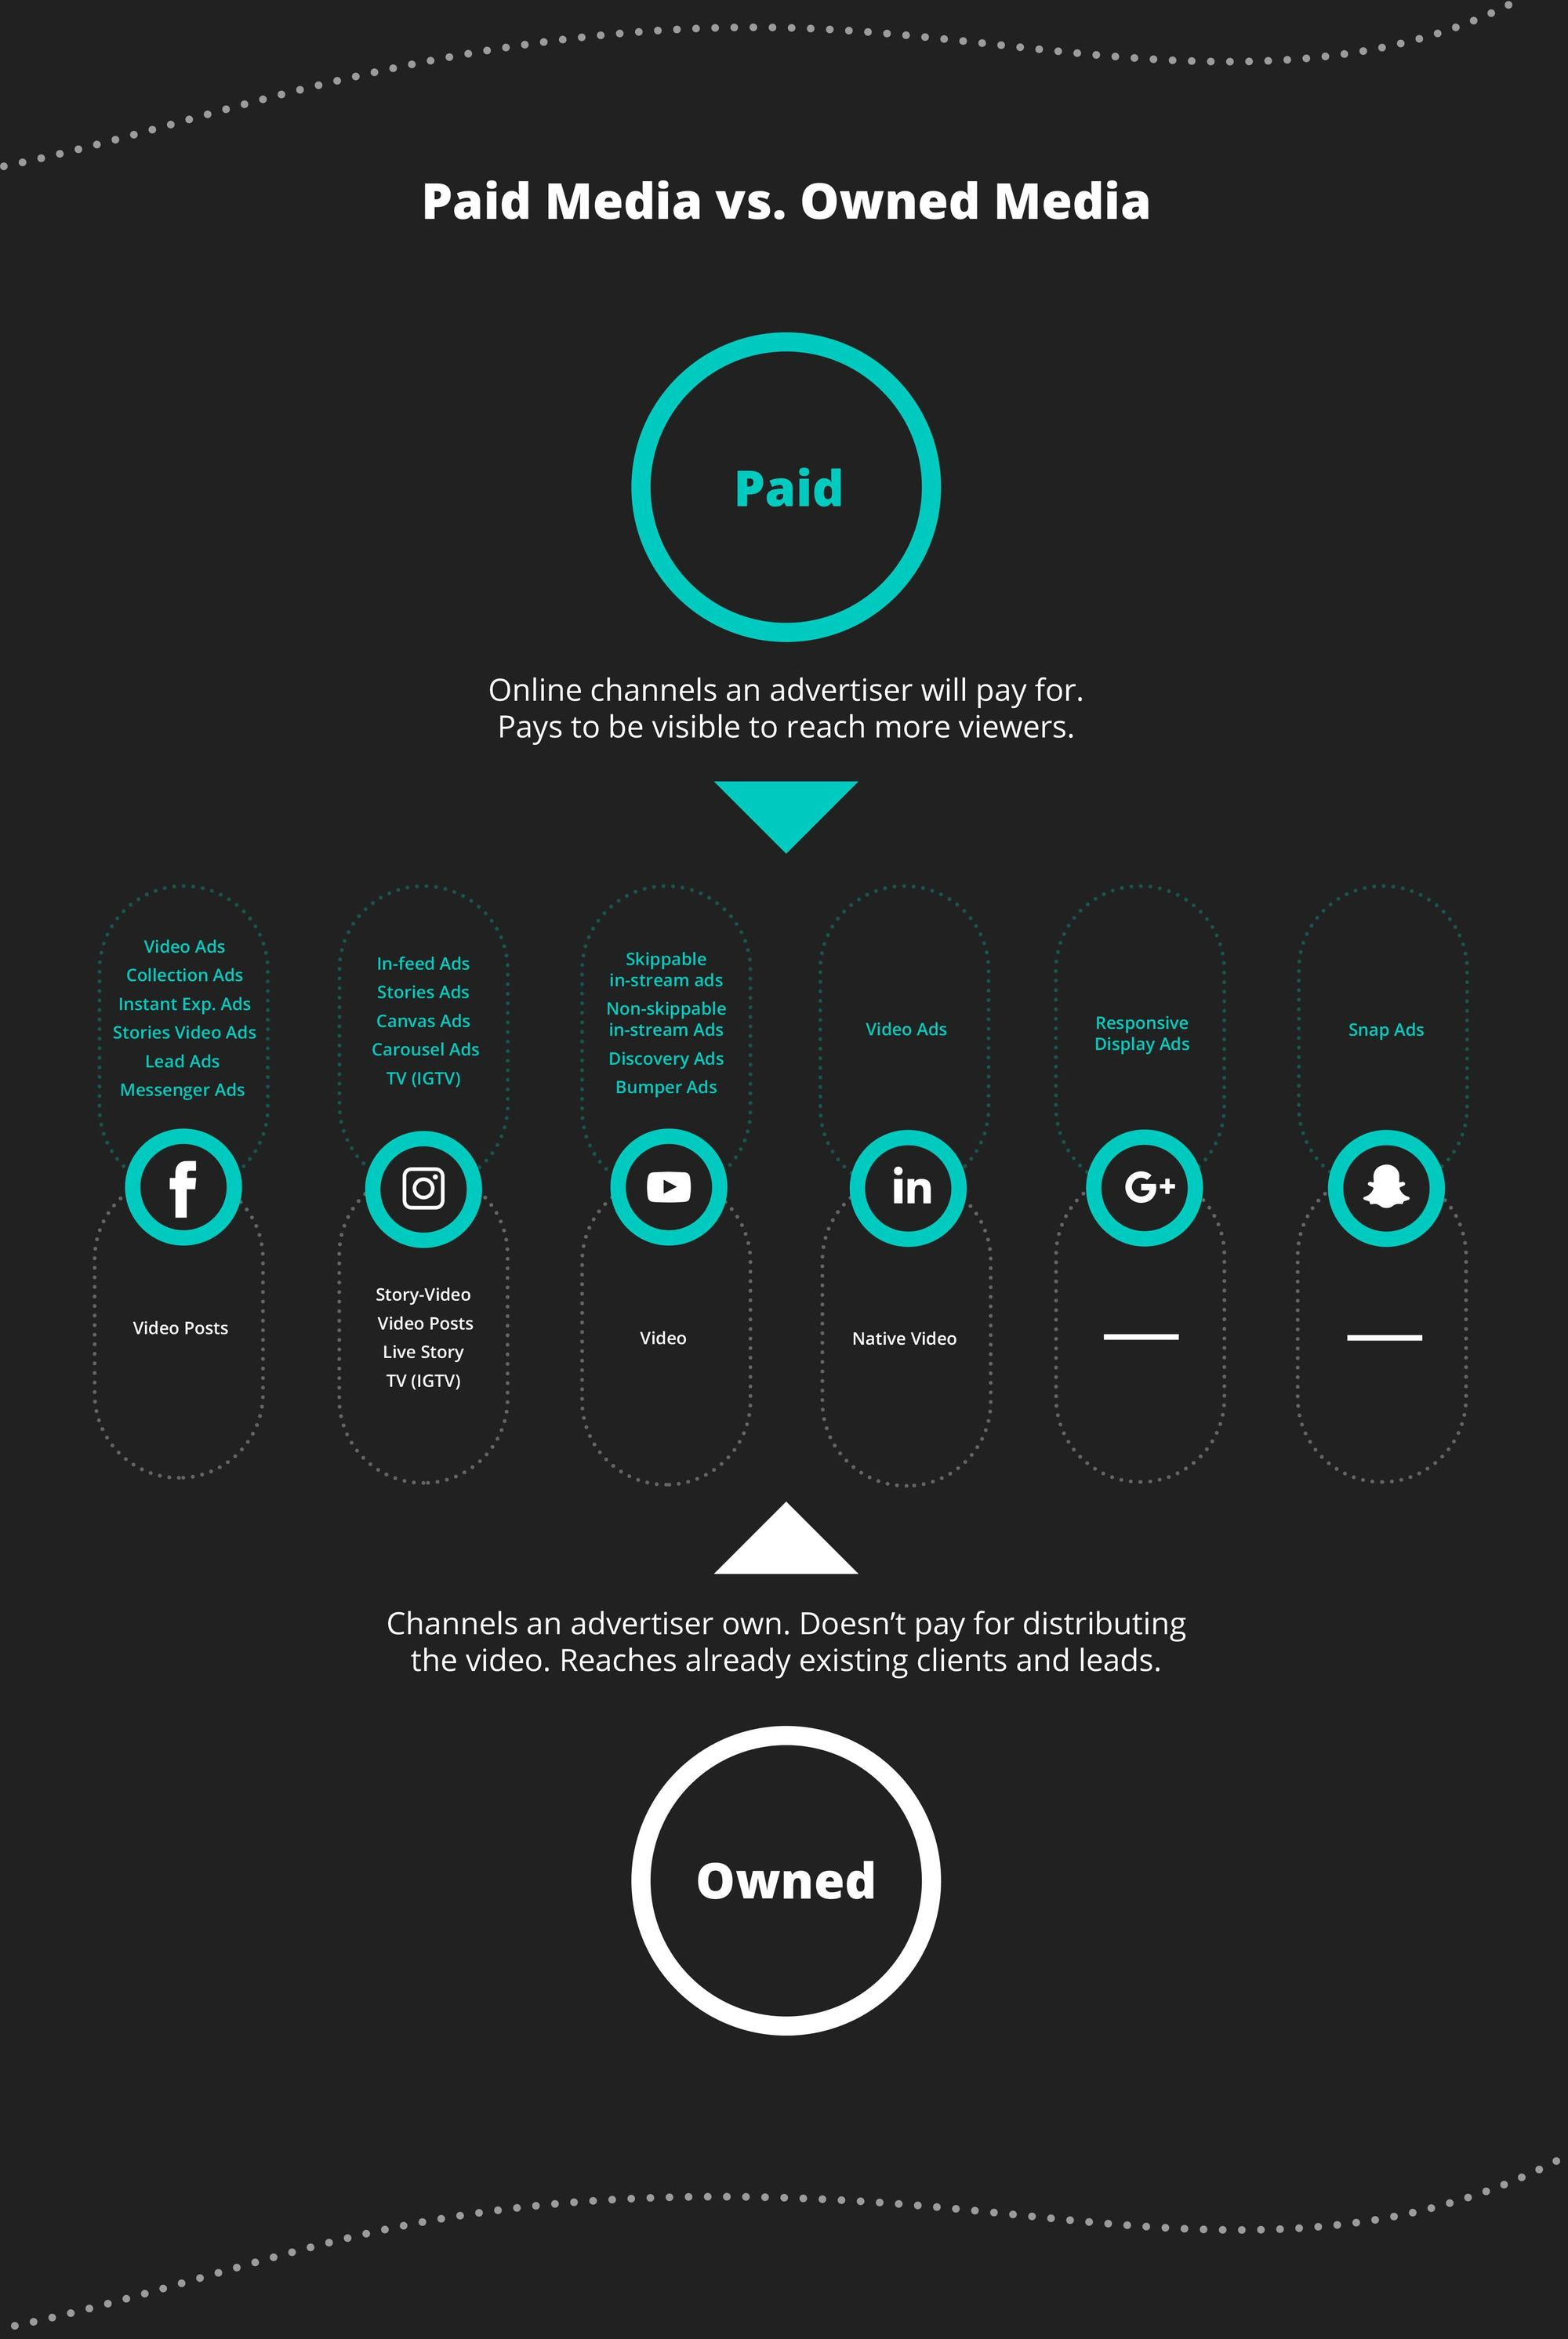 What is Paid and Owned media